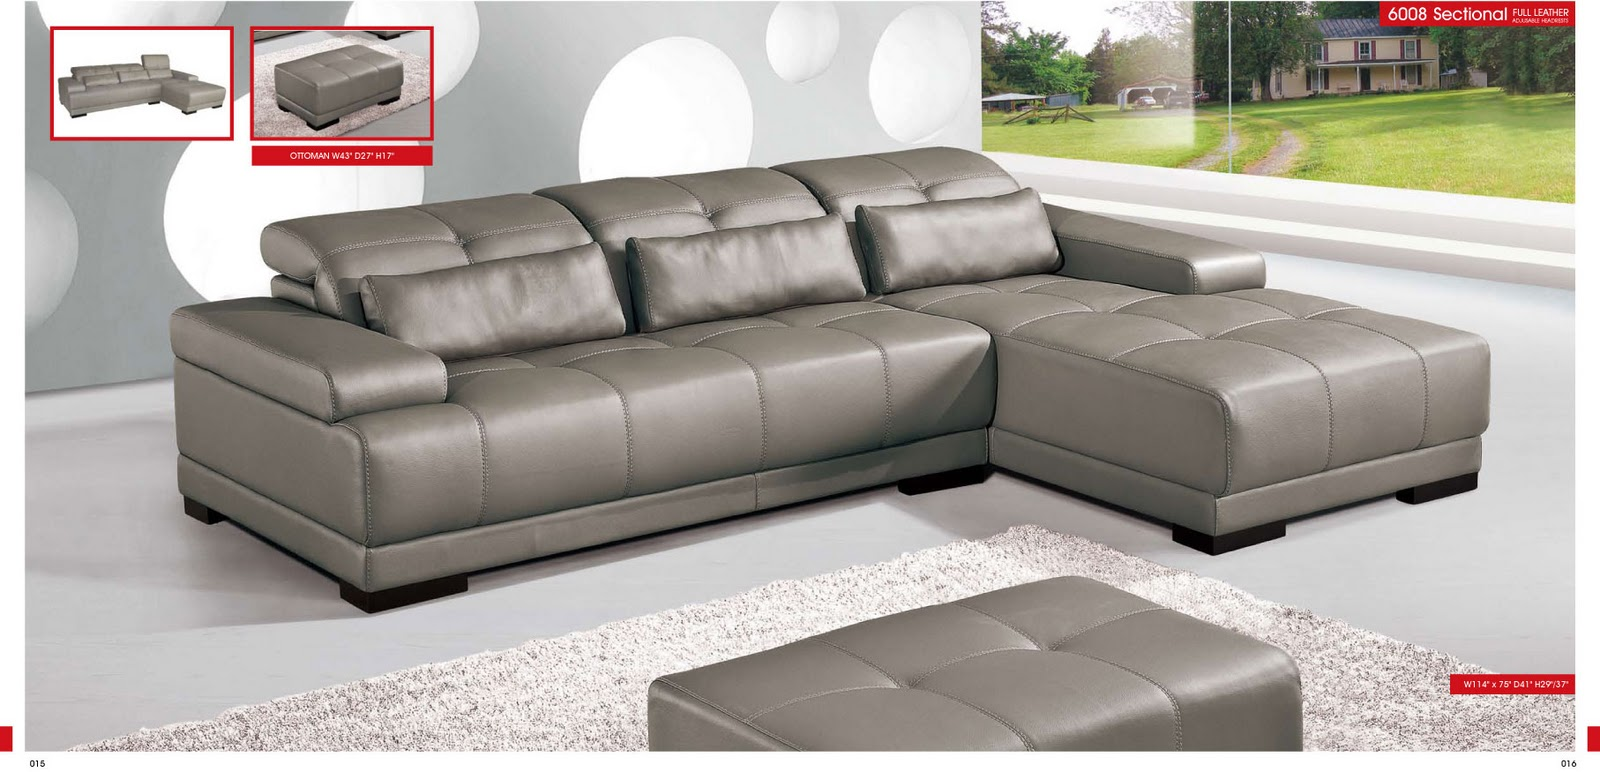 esf 6008 sectional royal furniture outlet 215 355. Black Bedroom Furniture Sets. Home Design Ideas